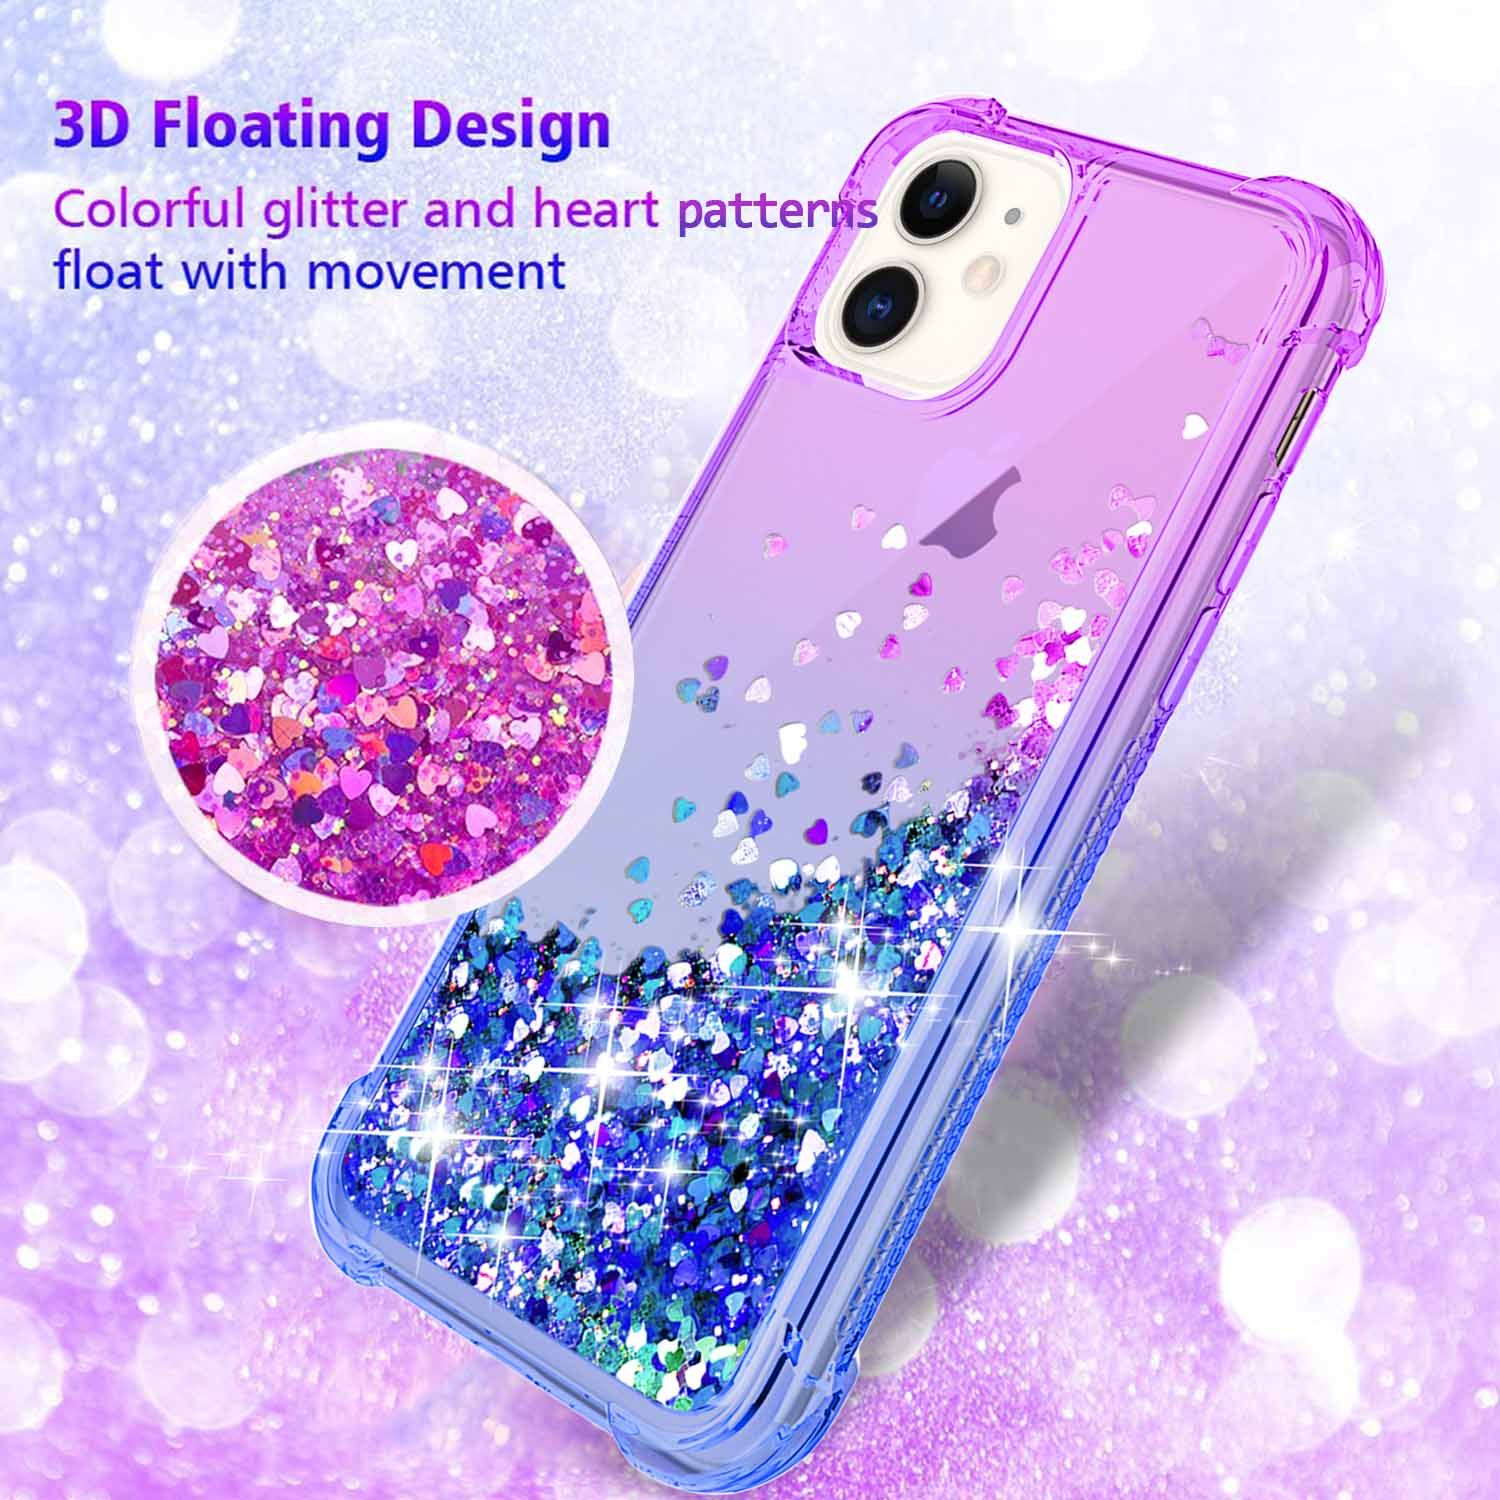 Iphone 11 Pro Max Case Pink Blue Glitter Flowing Liquid Girly Phone Case Girly Phone Cases Iphone Case Stickers Iphone Phone Cases